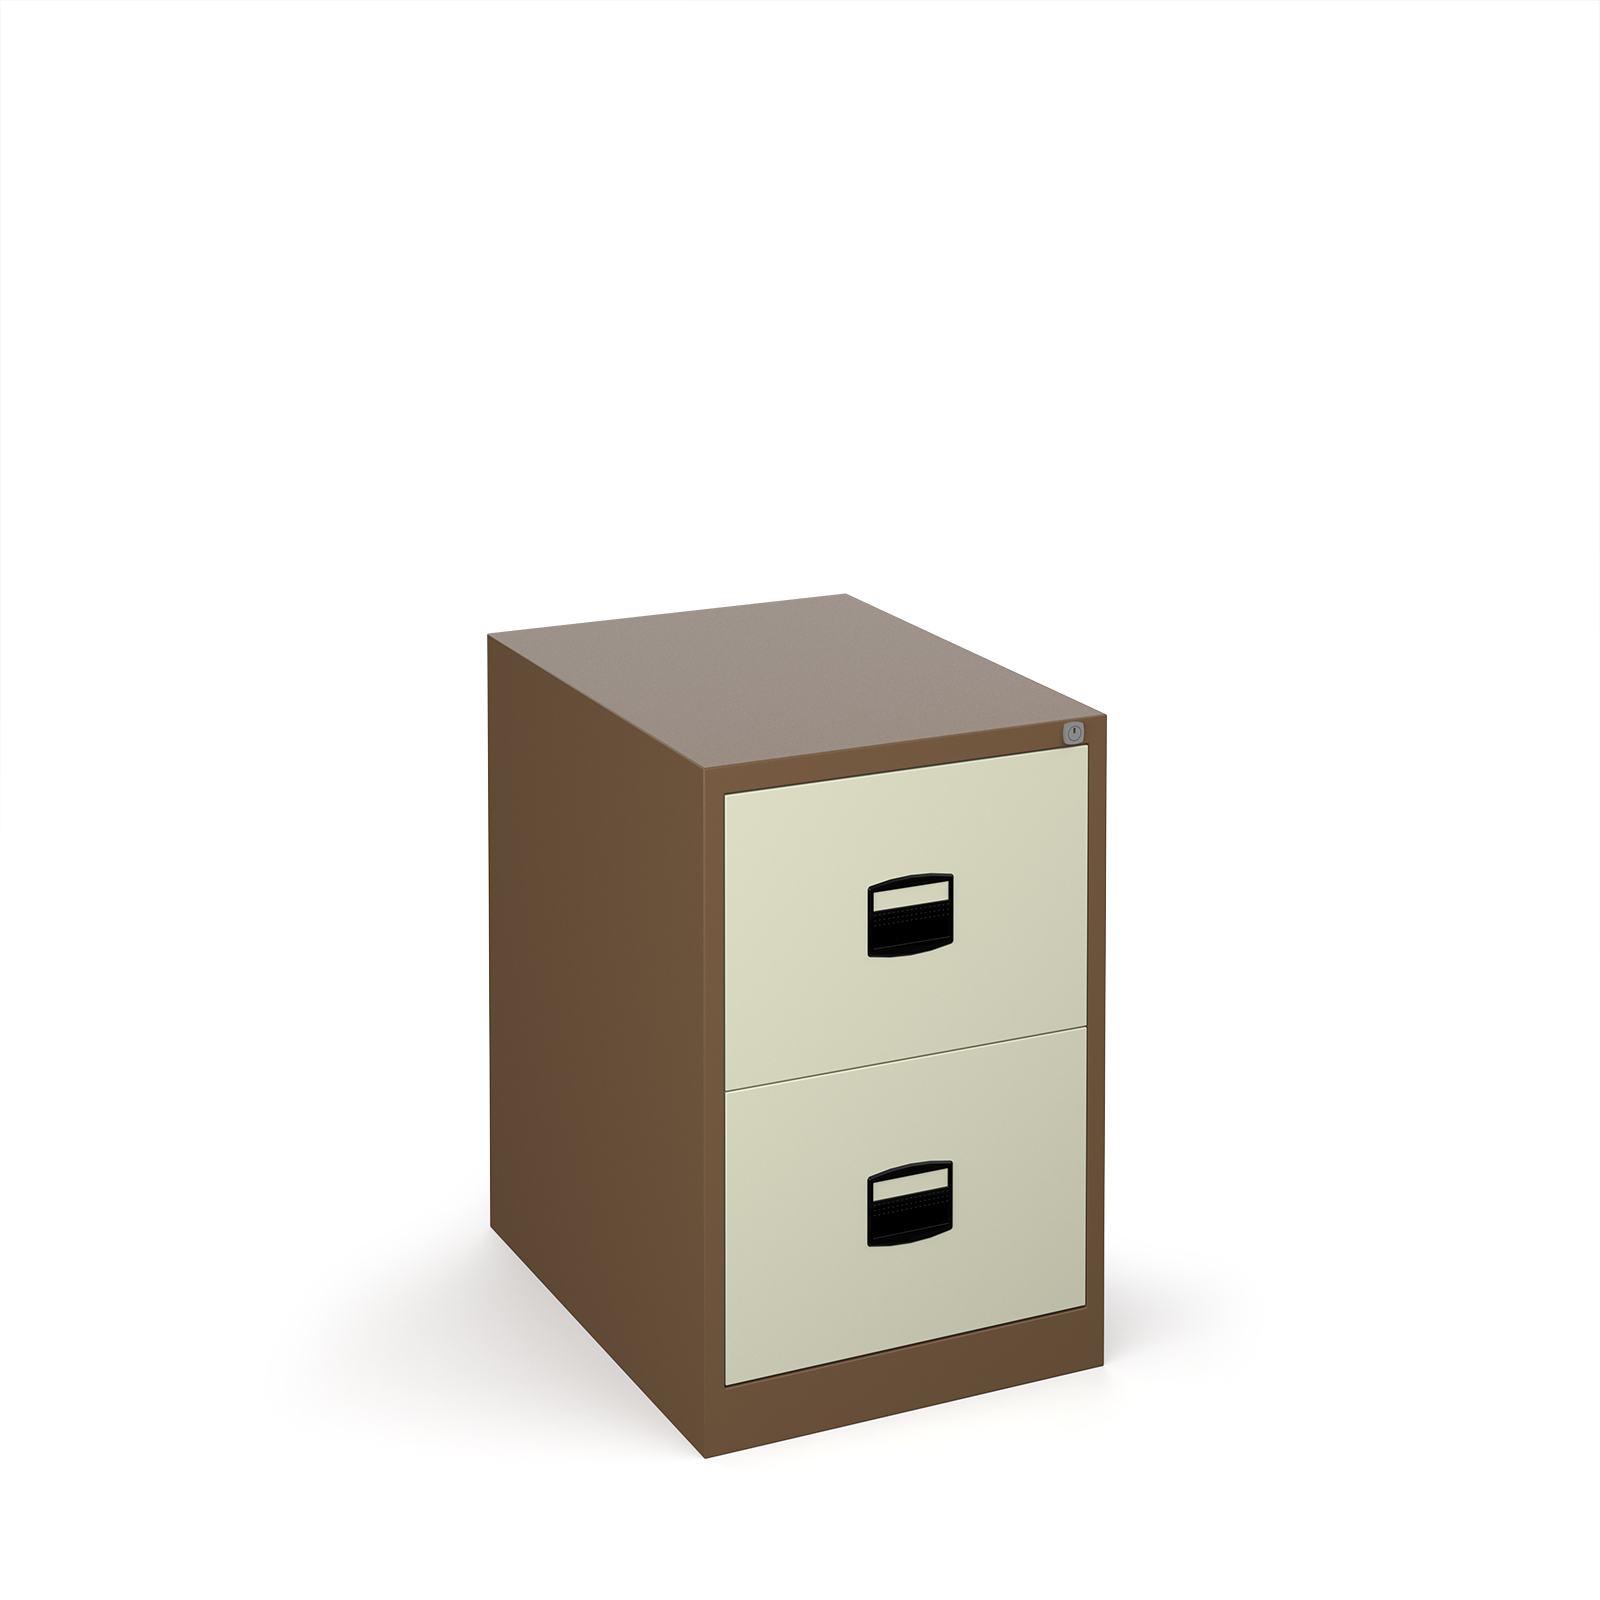 Steel Steel 2 drawer contract filing cabinet 711mm high - coffee/cream